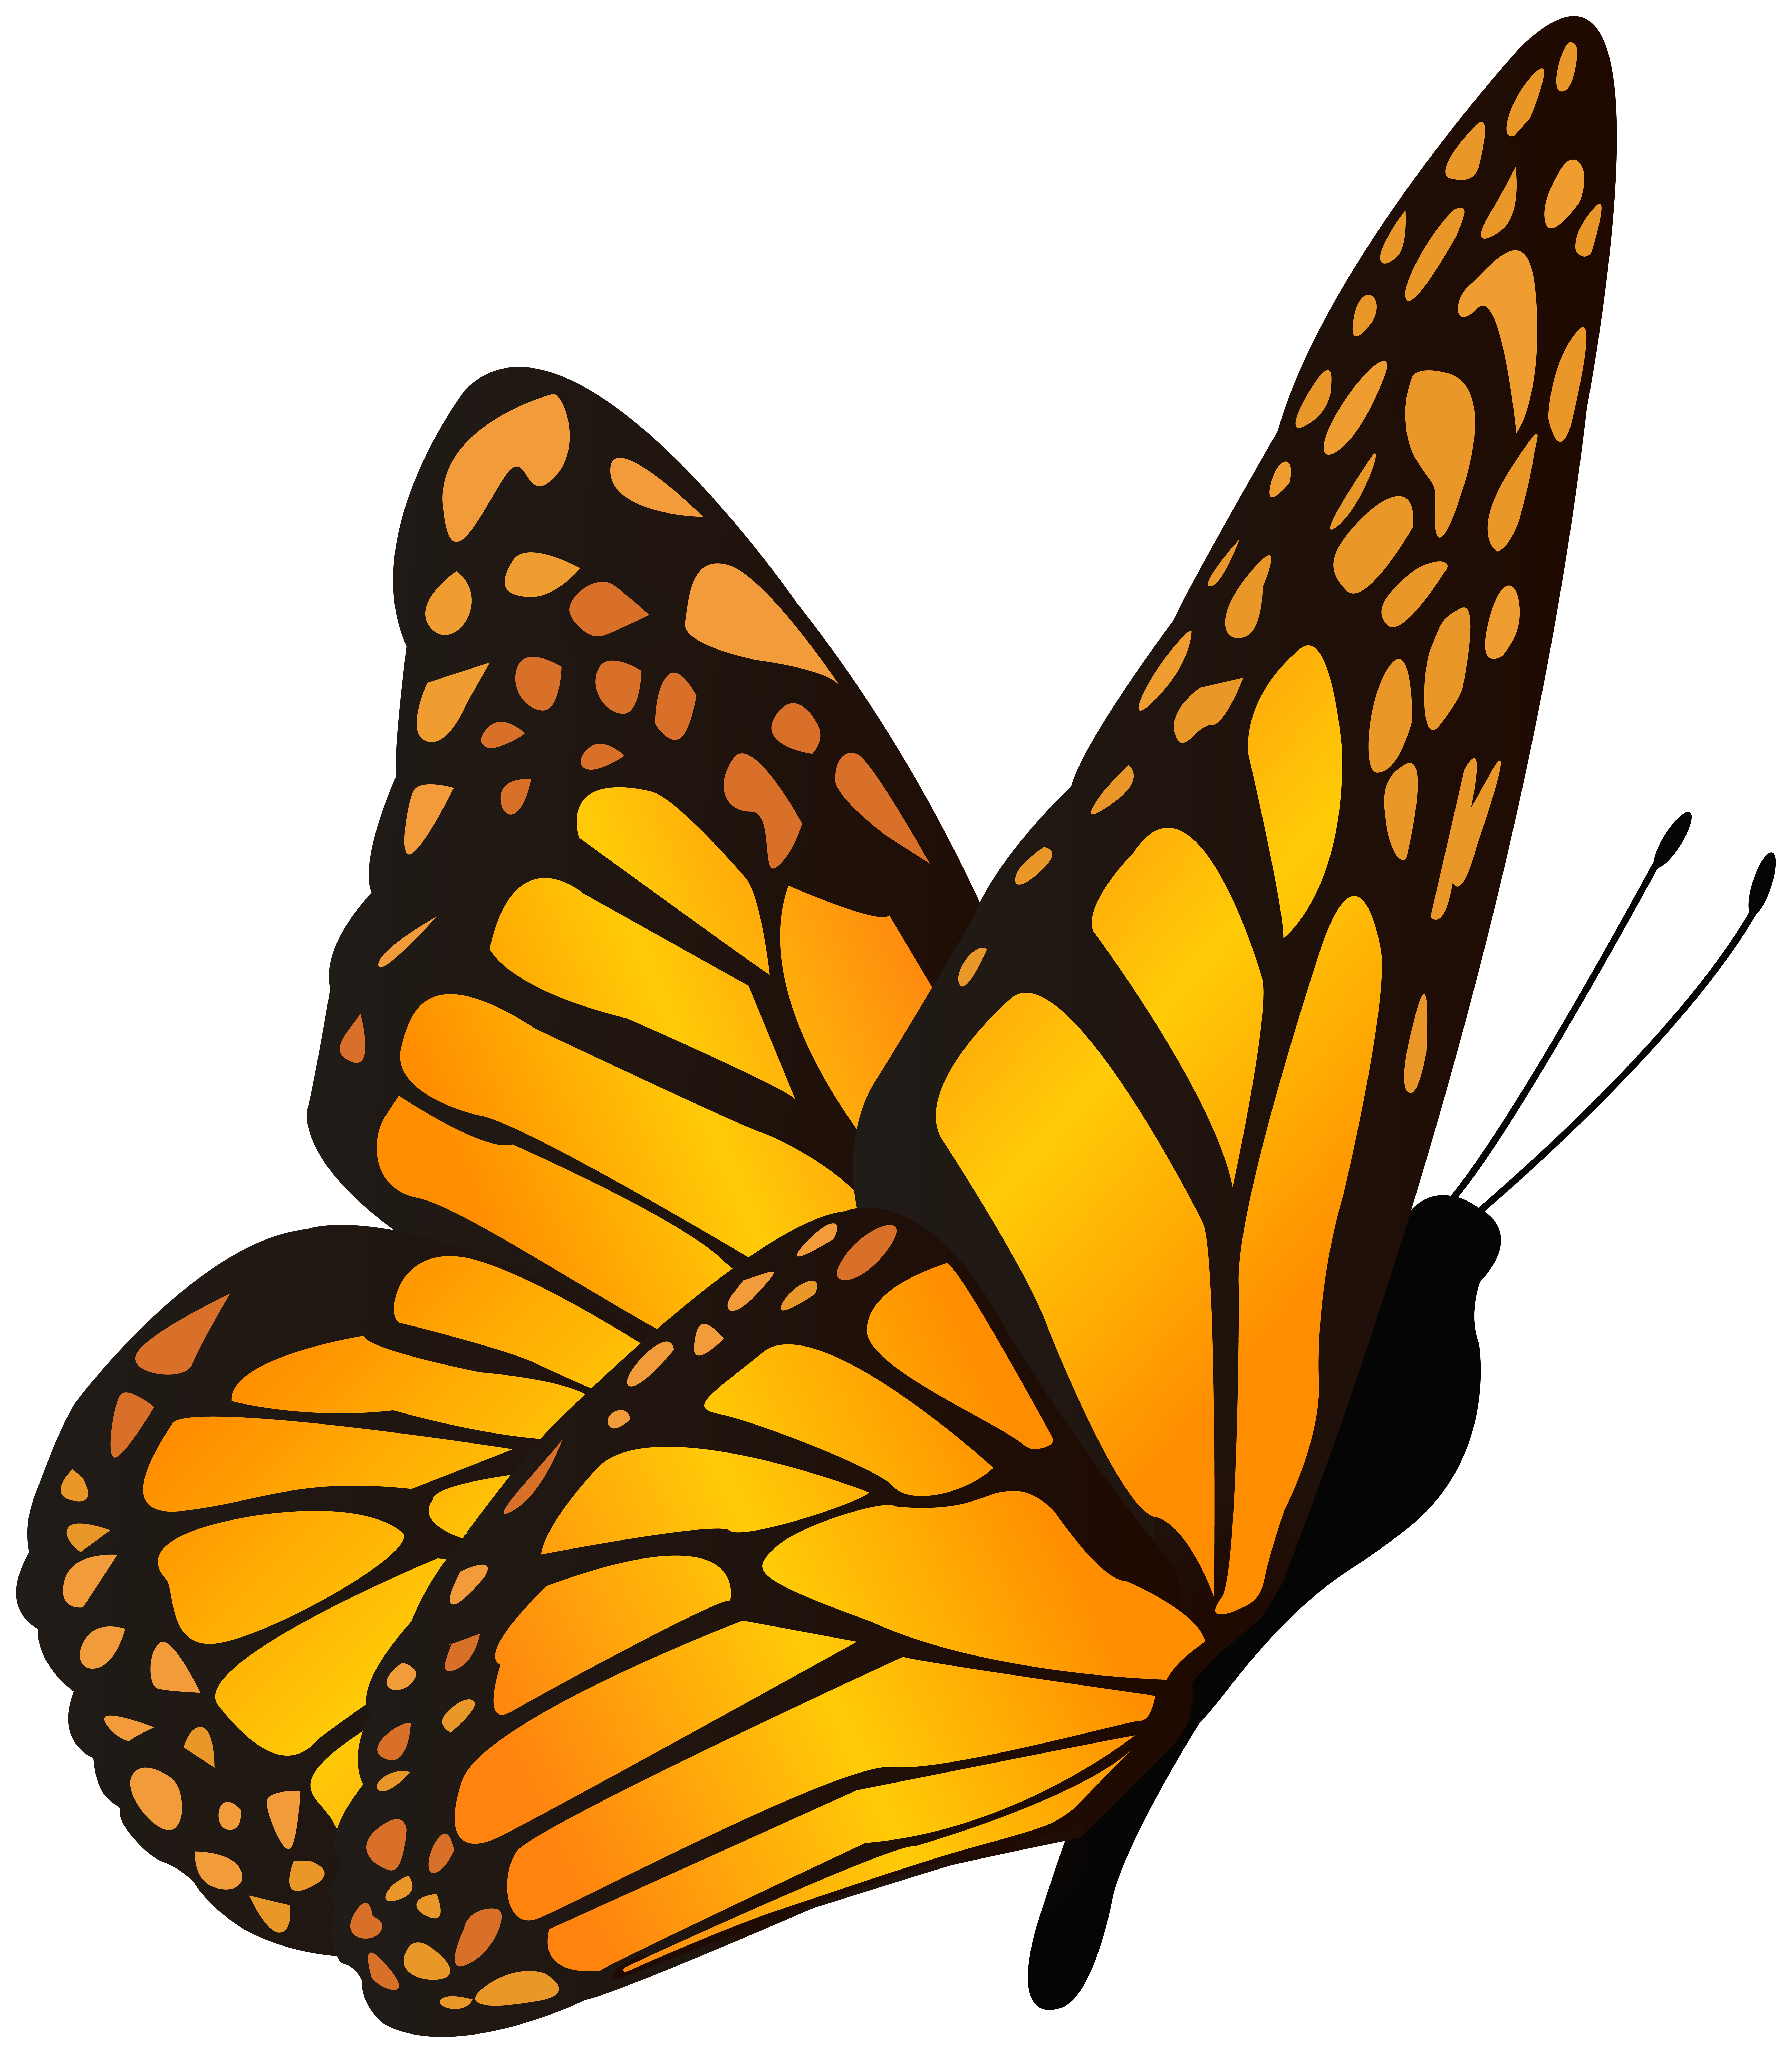 Butterfly Orange Yellow Clipart Image.